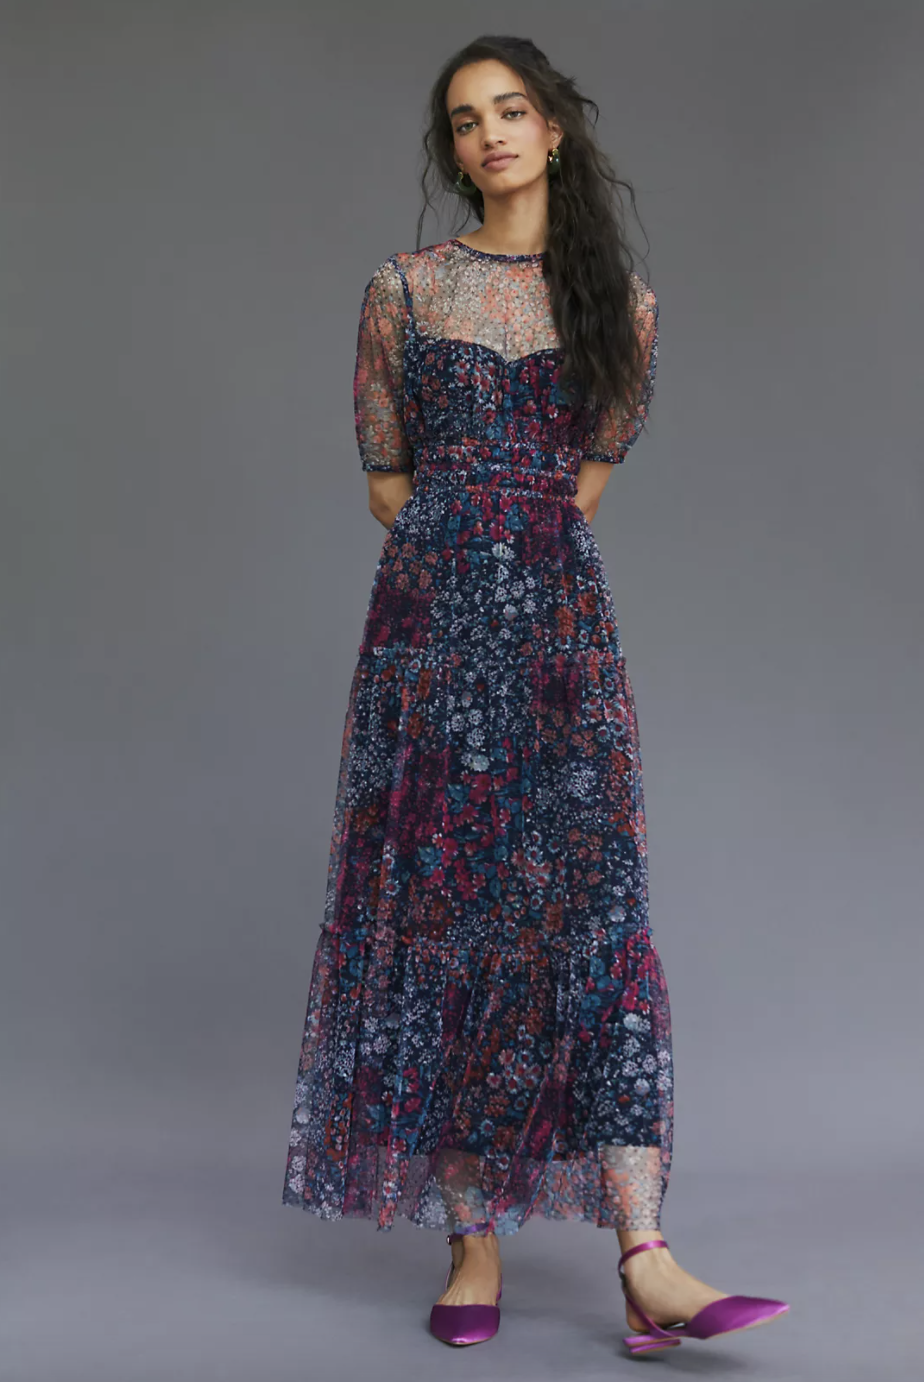 Maeve Ruched Floral Maxi Dress (Photo via Anthropologie)